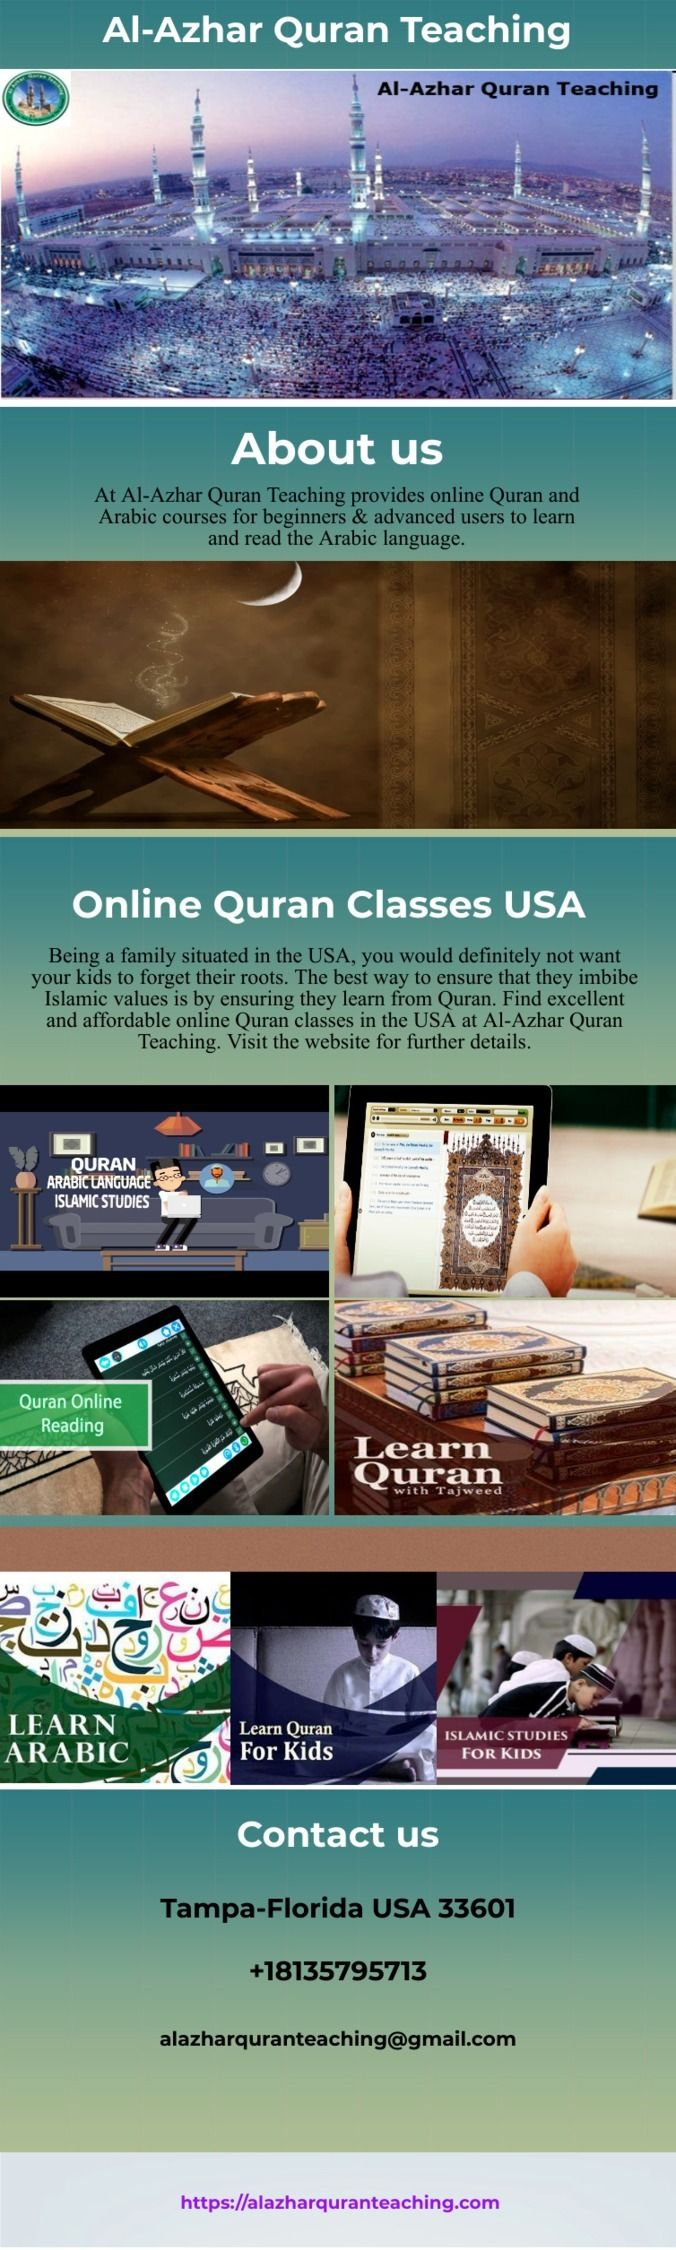 family situated USA, kids forge - alazharquranteaching   ello